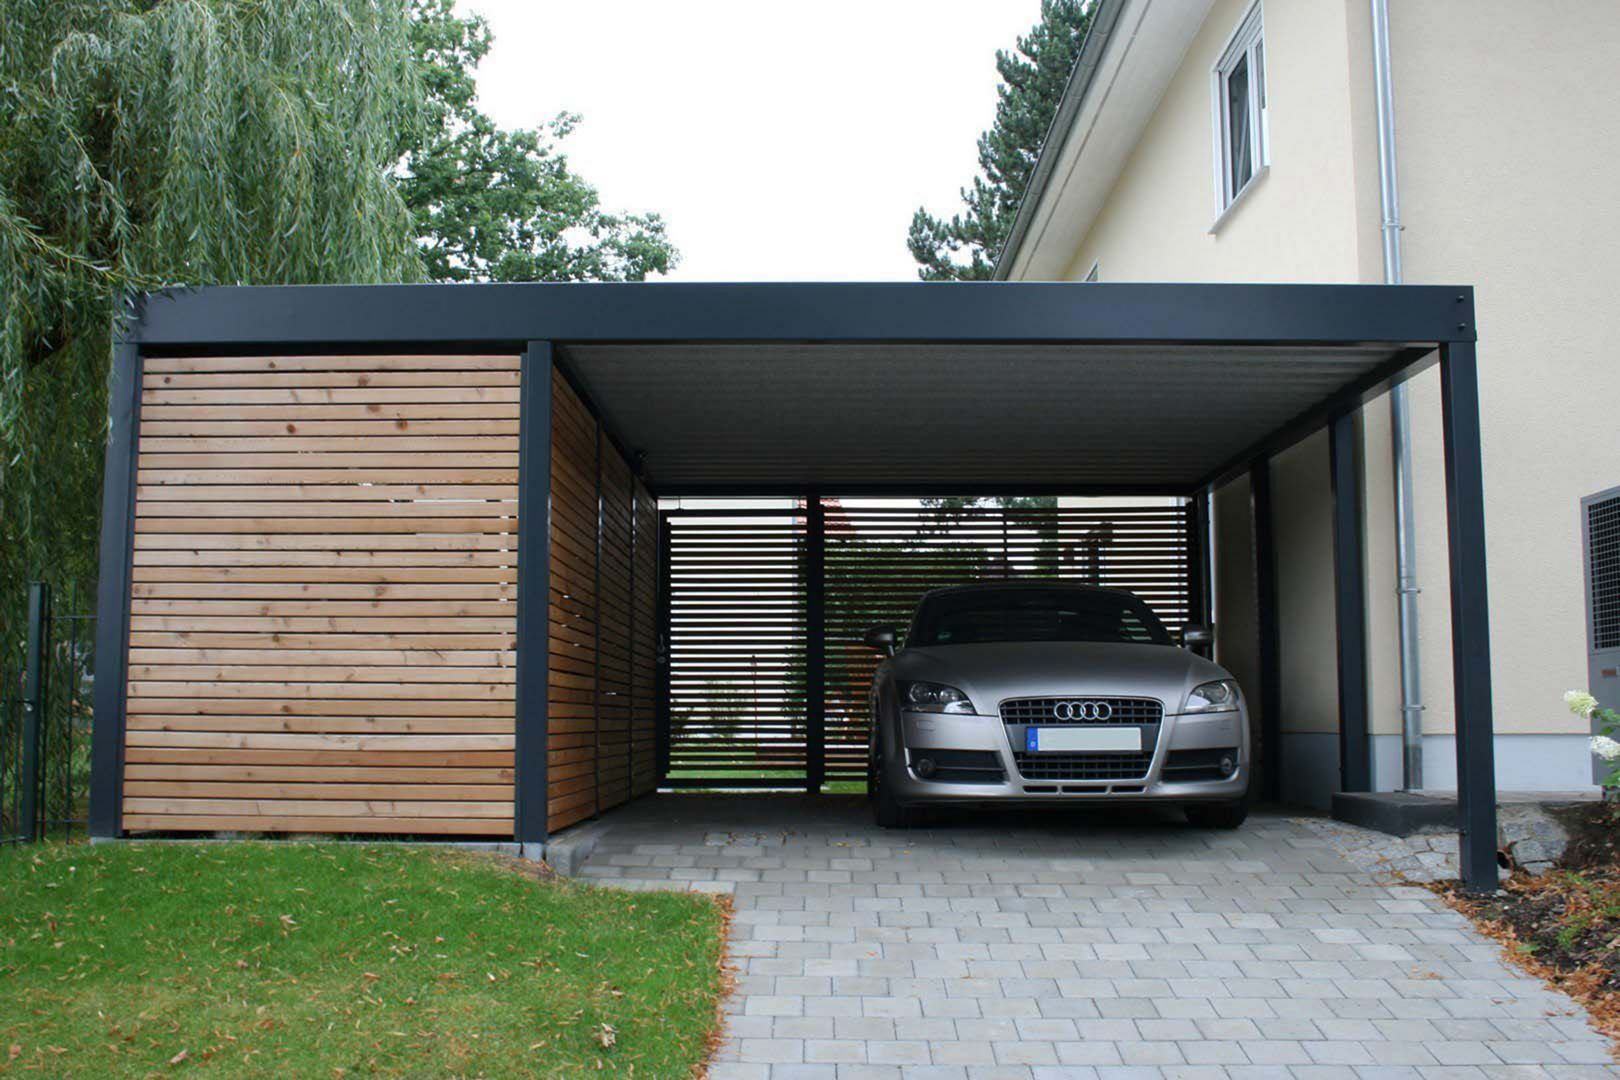 Carport Am Haus 25 Super Cool And Modern Car Garage Design For The Safety Of Your Beloved Car | Carport Designs, Garage Canopies, Modern Carport